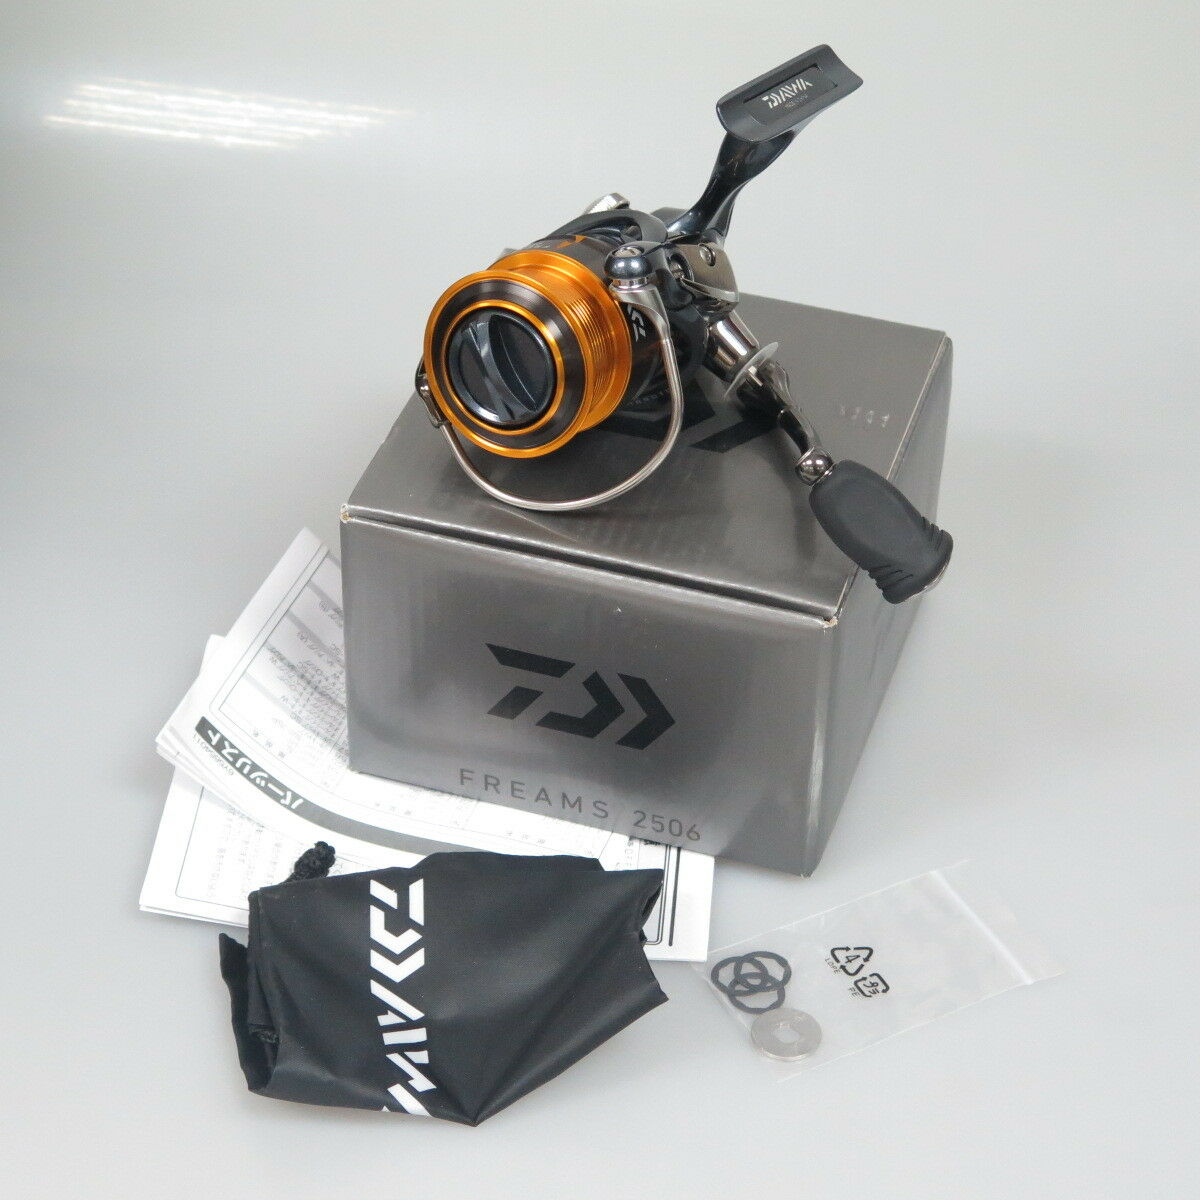 NEW DAIWA FREAMS 2506 Spinning Reel Mag Sealed FEDEX PRIORITY 2DAY TO US